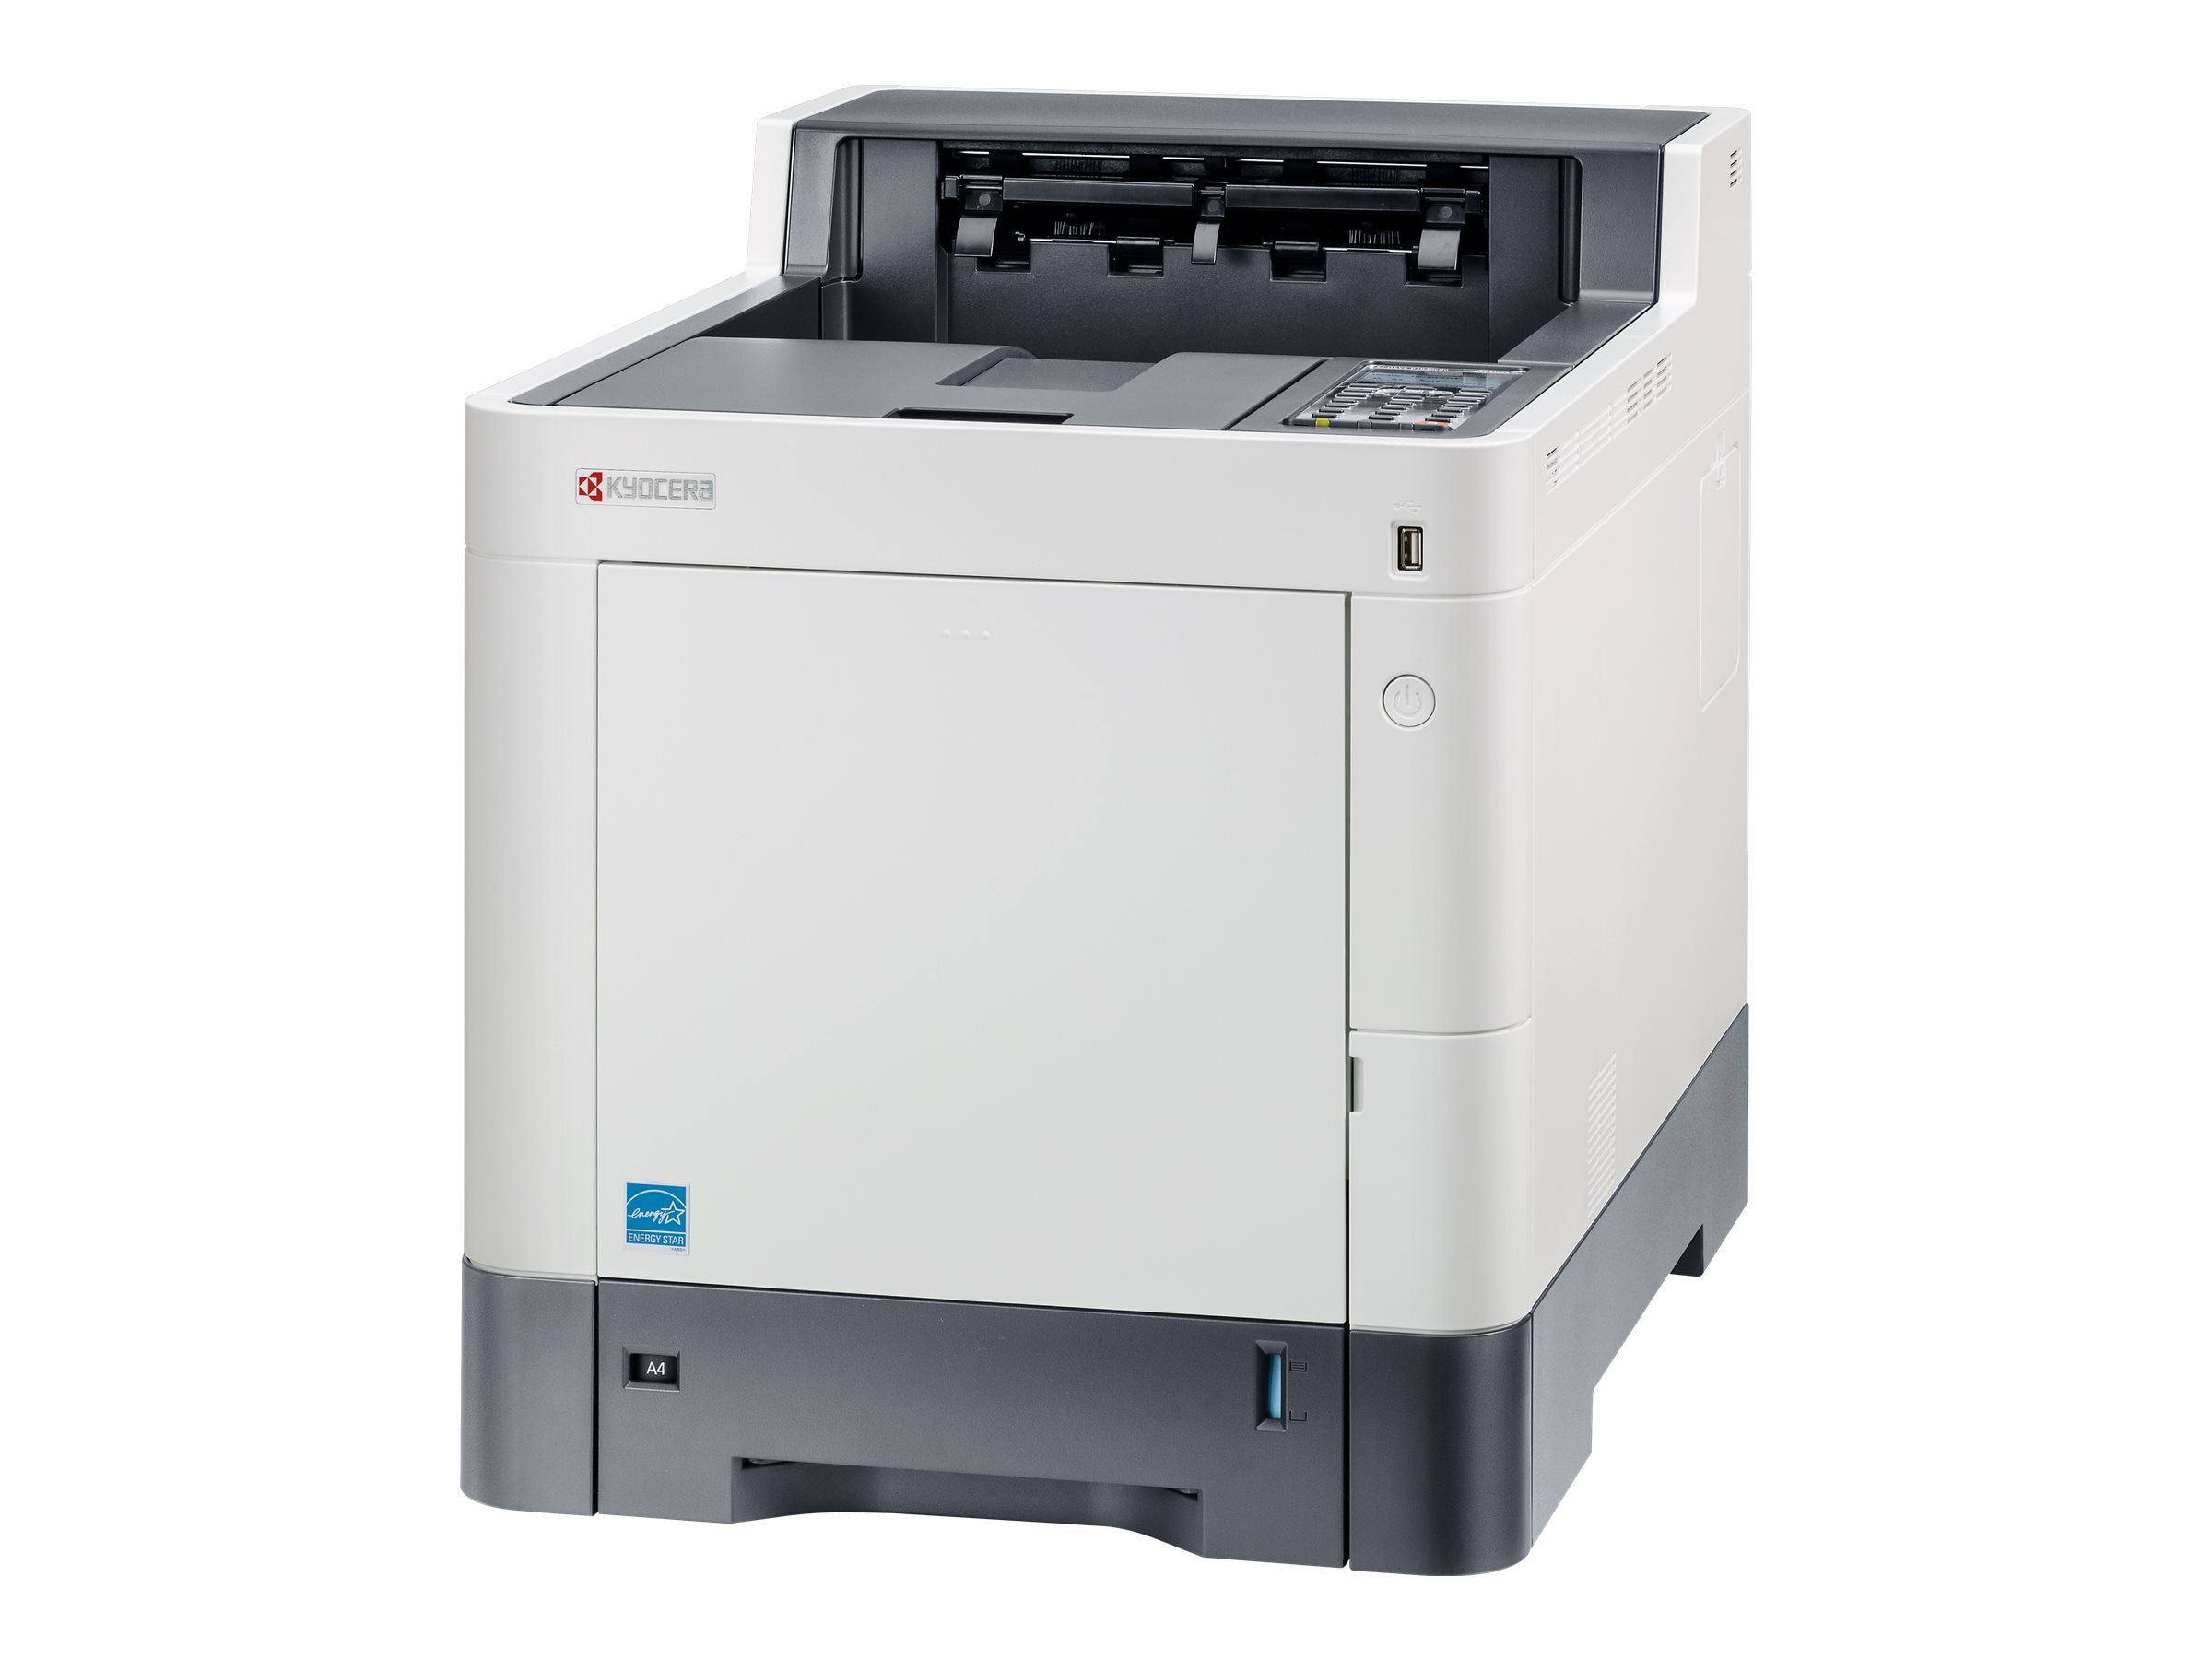 Kyocera ECOSYS P7040cdn Color Printer